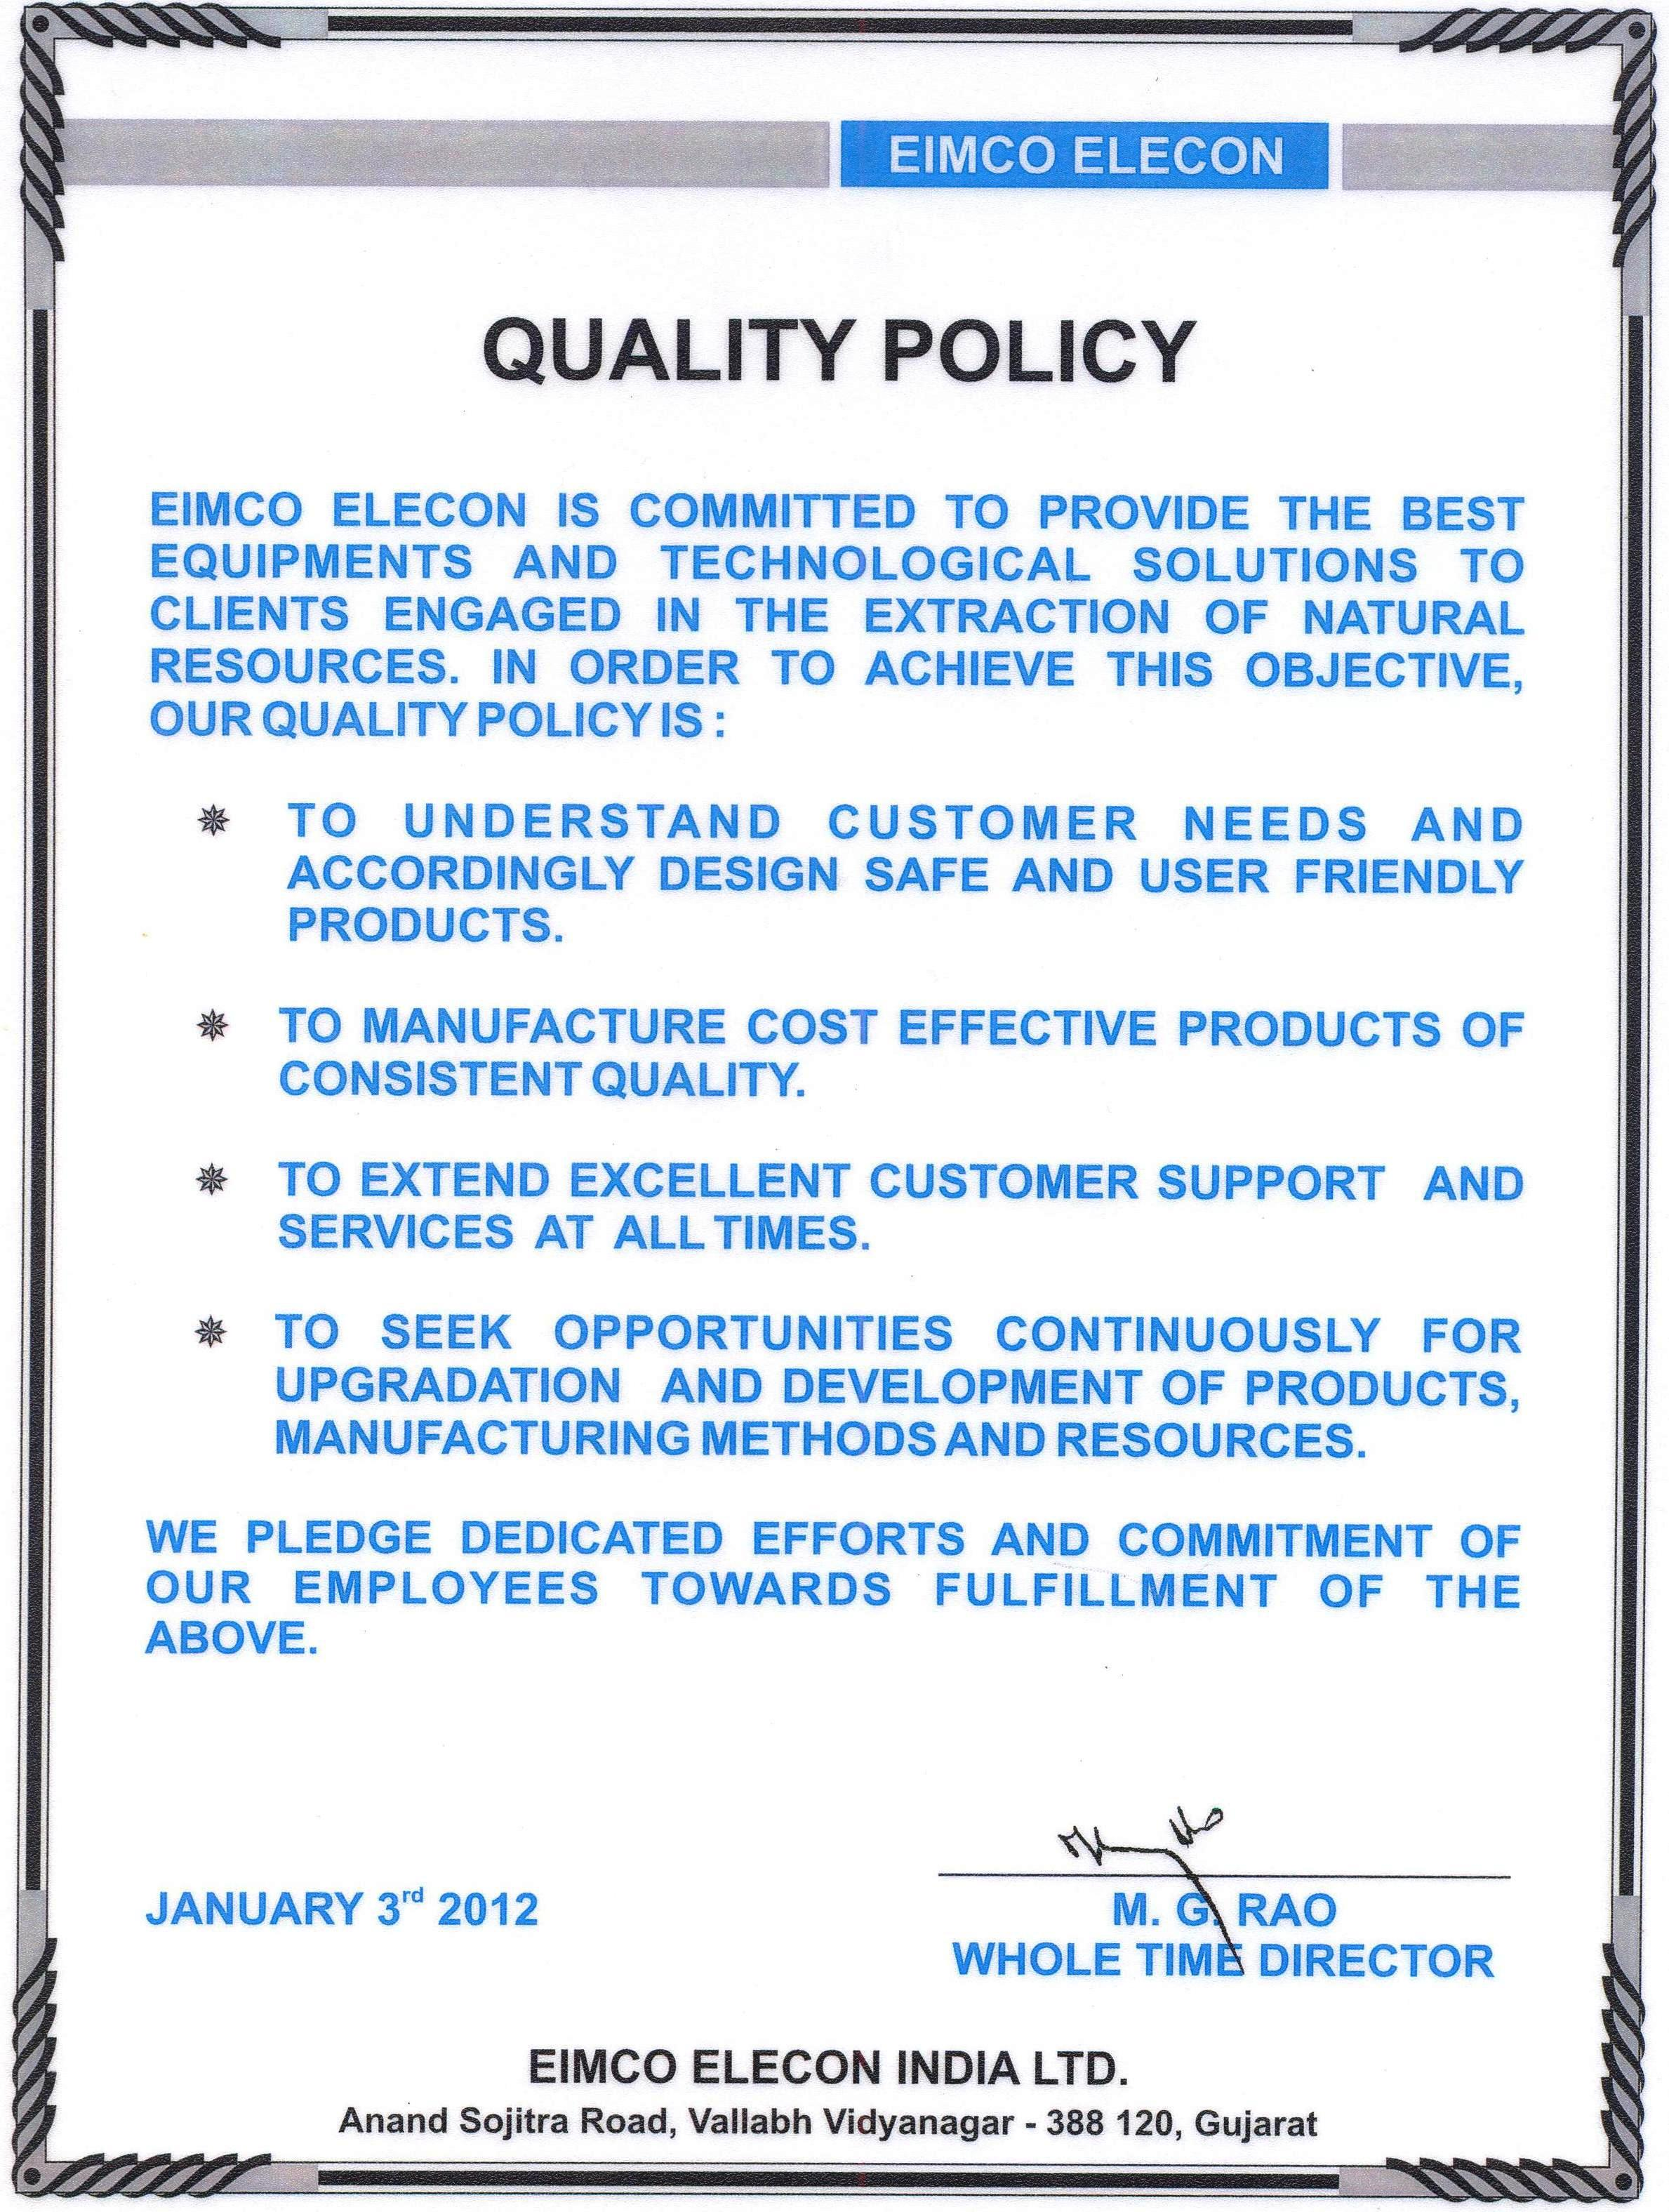 Quality Policy Eimco Elecon India Limitedeimco Elecon